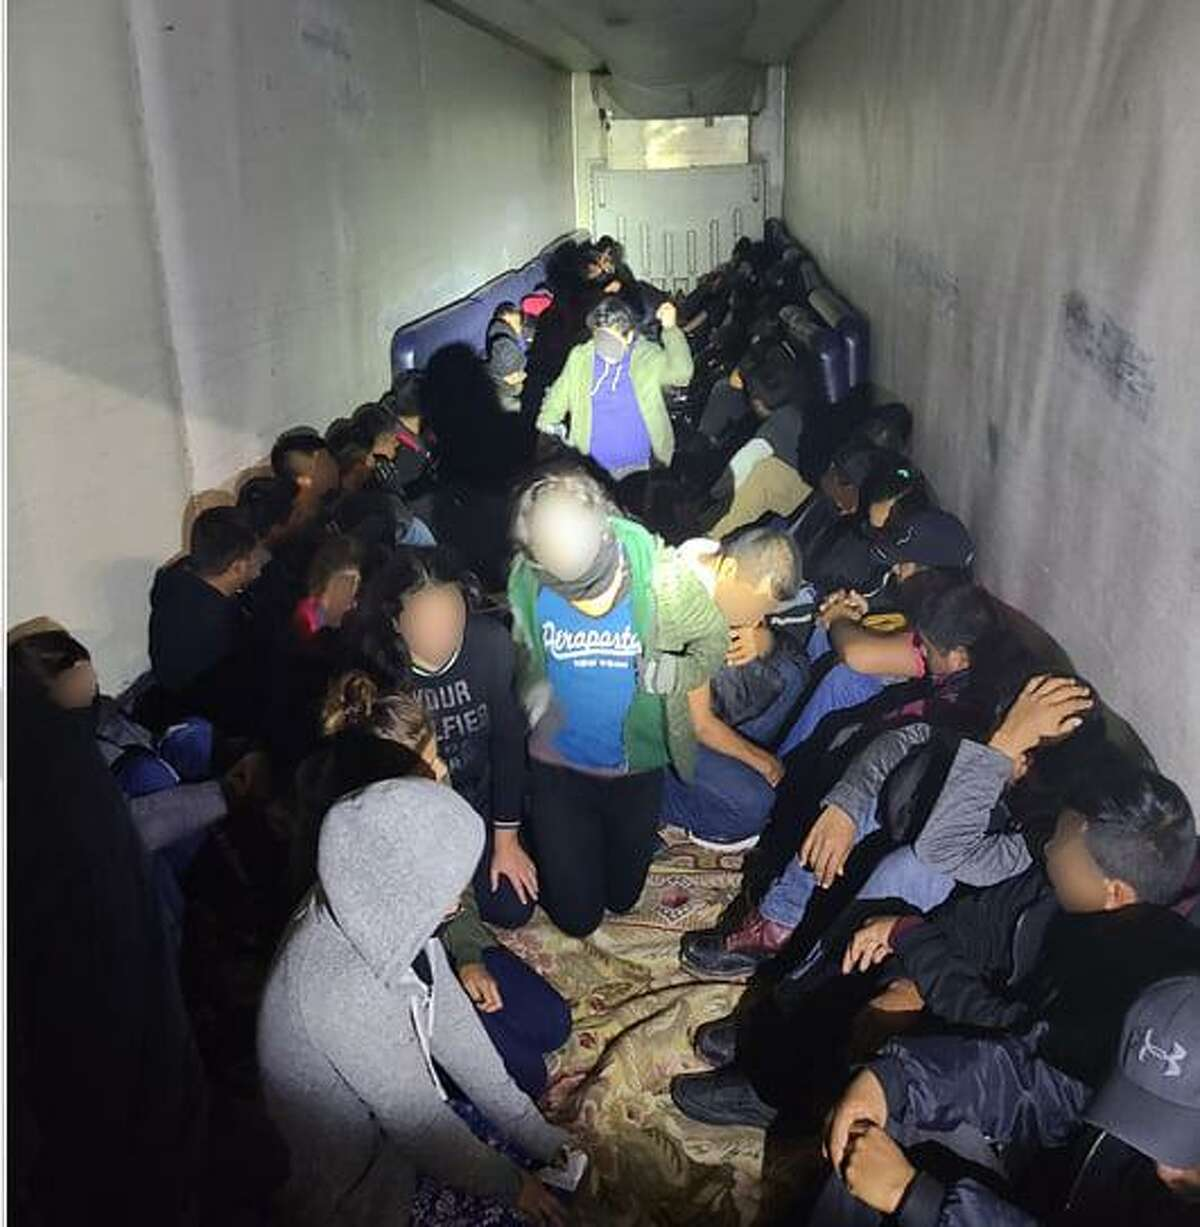 U.S. Border Patrol agents said they discovered these 72 people in the back of a trailer. All were determined to be immigrants who had crossed the border illegally.